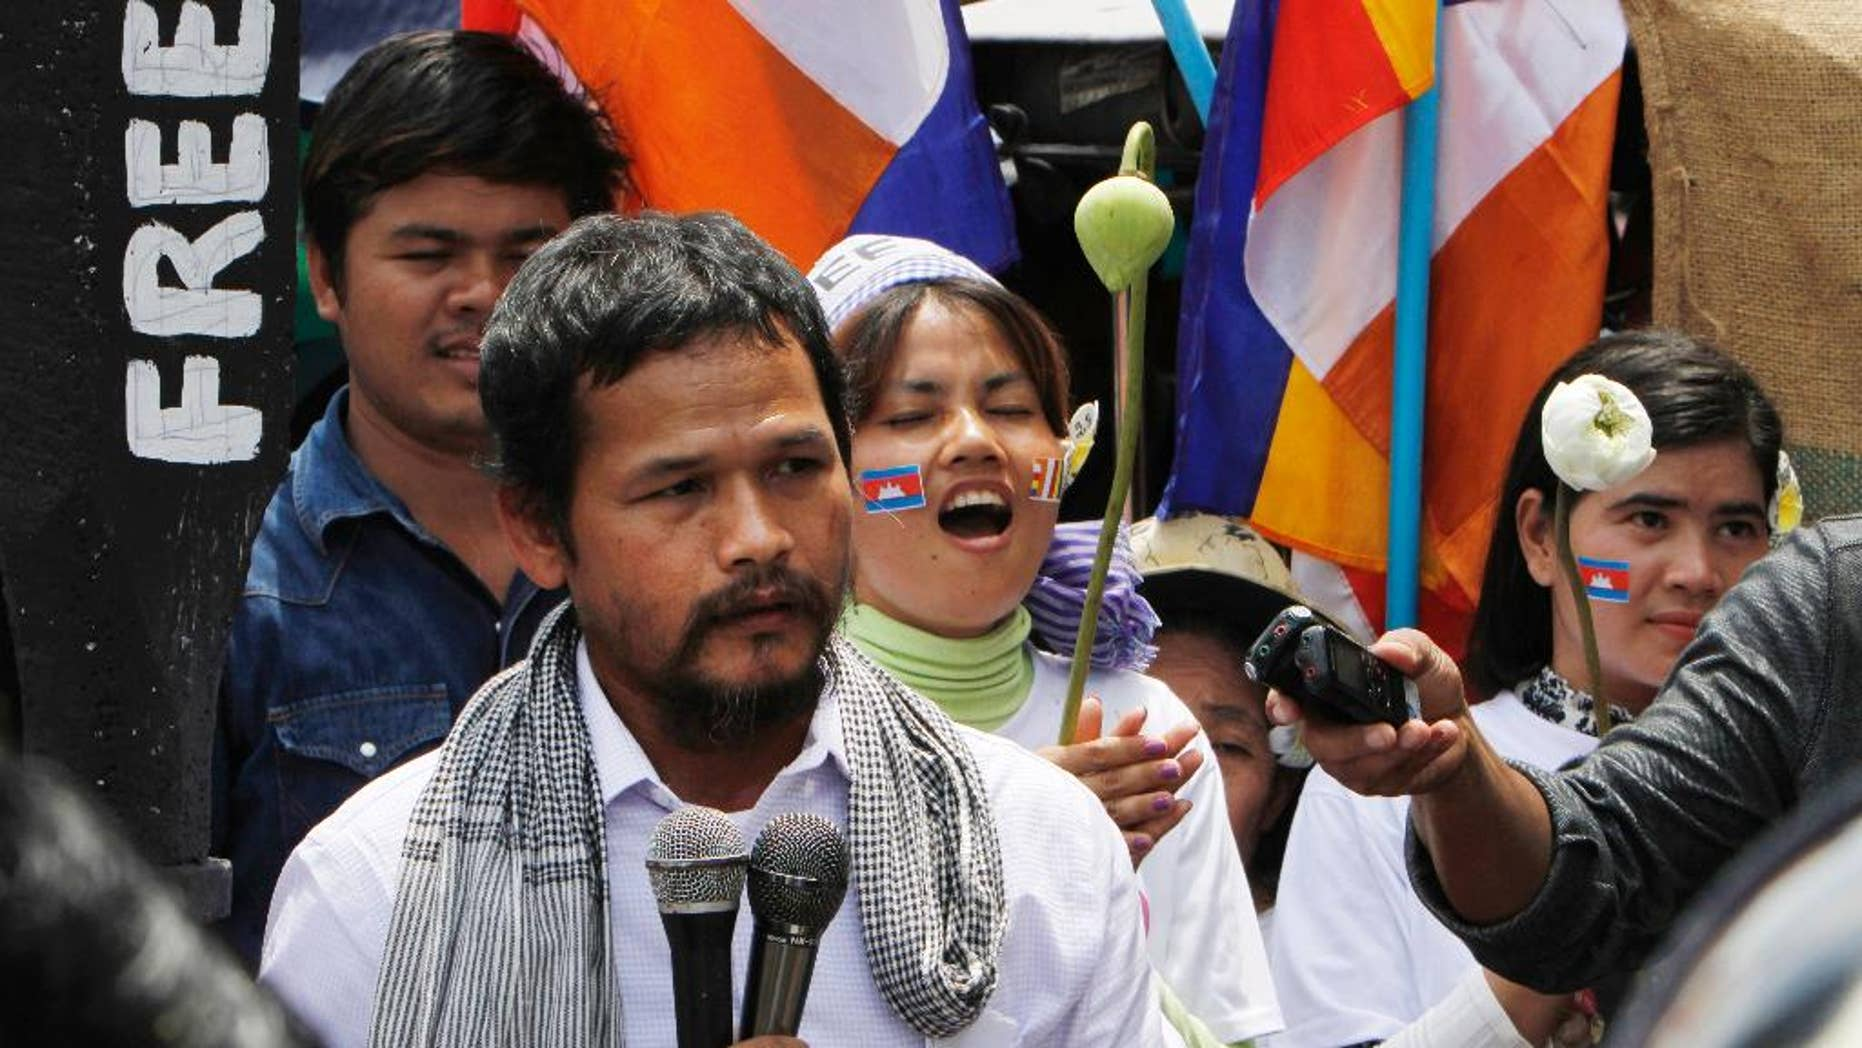 In this May 20, 2014, photo, Meach Sovannara of the opposition Cambodia National Rescue Party gives a speech at a blocked main street near the Phnom Penh Municipality Court during a gathering to call for the release of anti-government protesters who were arrested in a police crackdown, in Phnom Penh, Cambodia. A court on Tuesday, July 21, 2015, sentenced 11 members of the opposition party to long prison terms after convicting them of insurrection in connection with a violent protest in 2014. Meach Sovannara, an opposition spokesman, was one of three defendants sentenced to 20 years in prison for leading the violent protest. Eight others received seven-year sentences for taking part. (AP Photo/Heng Sinith)